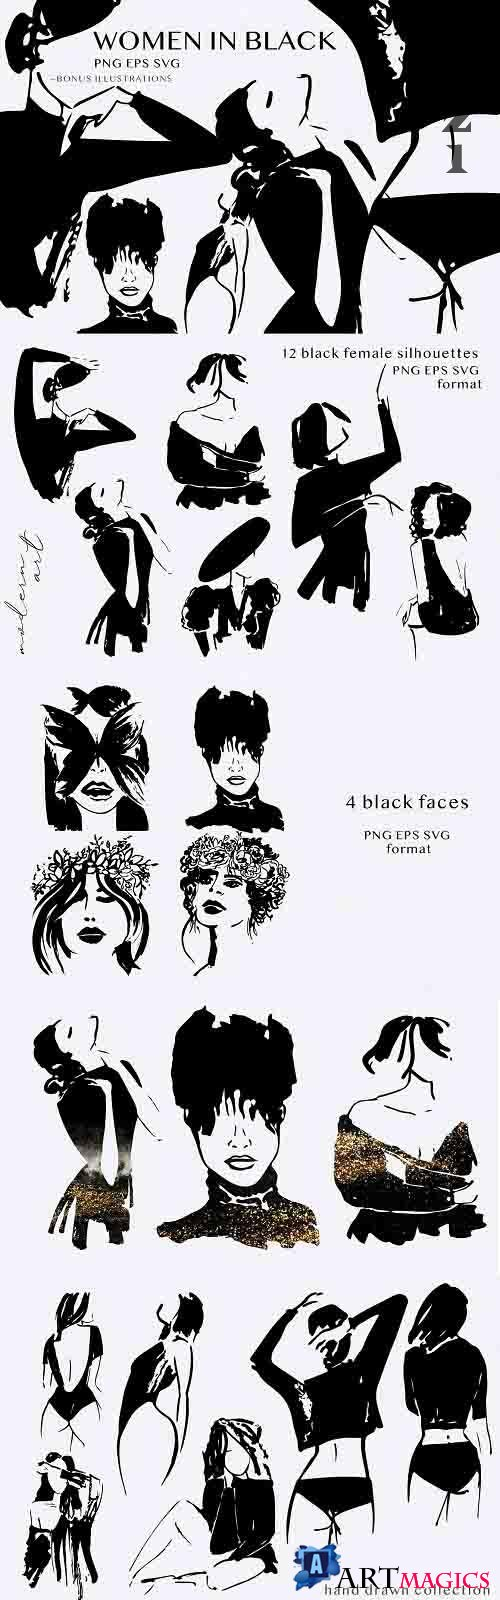 Black women silhouettes - 5929320